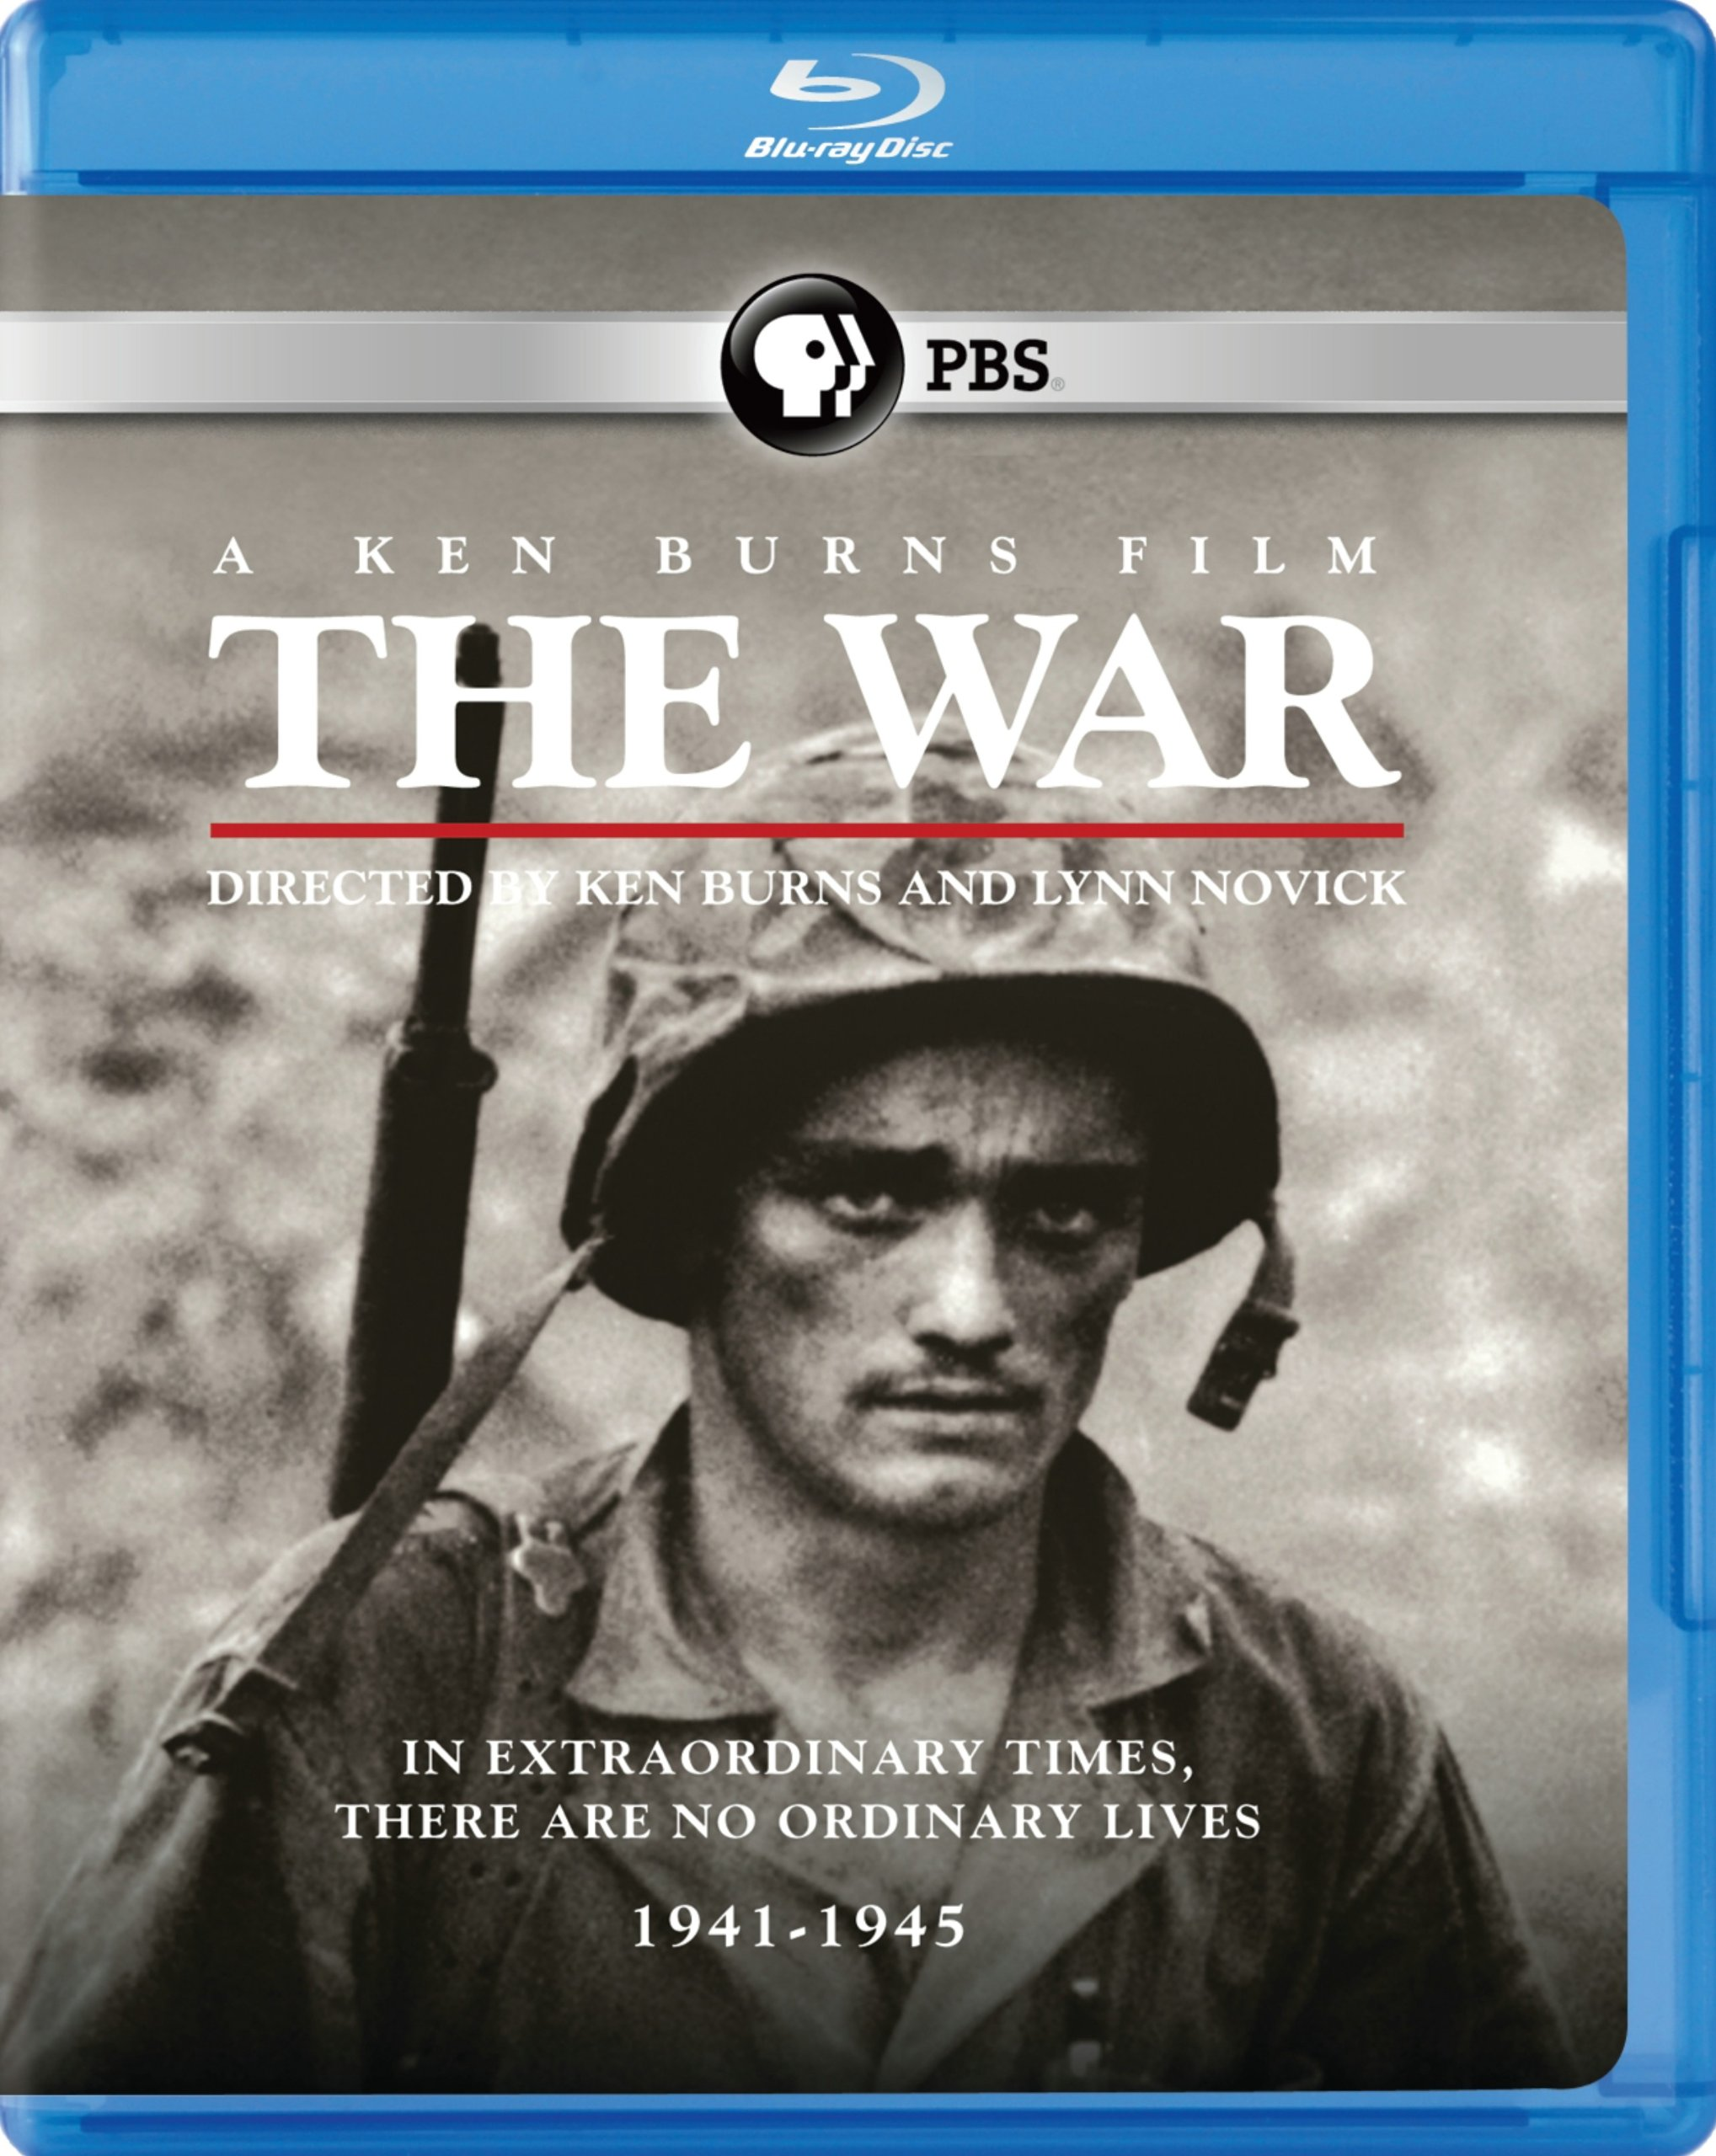 The War: A Film by Ken Burns [Blu-ray] by Pbs (Direct)